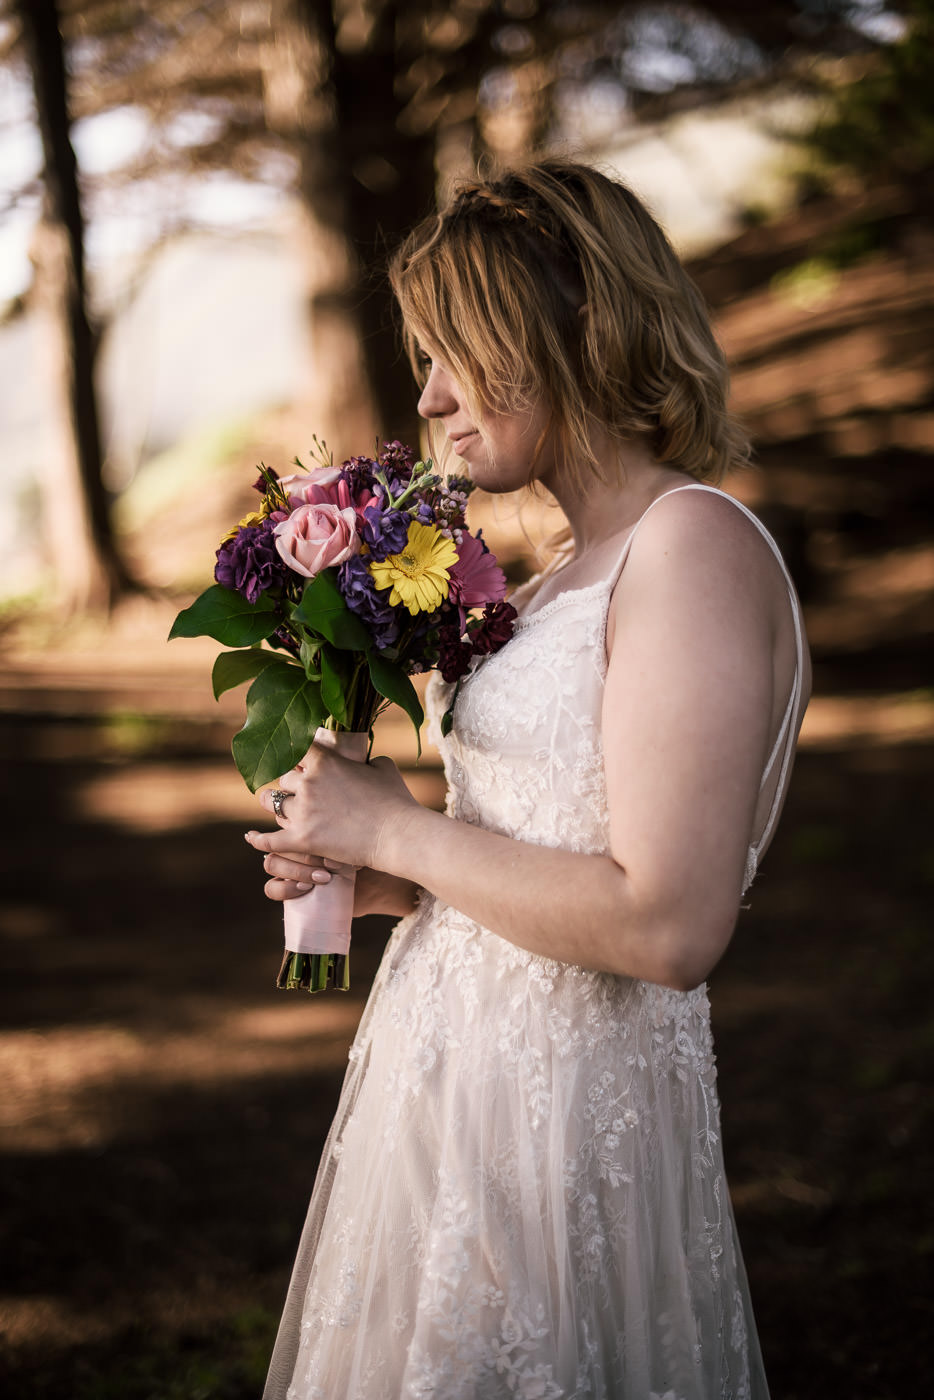 Stunning portrait of a bride at her elopement.